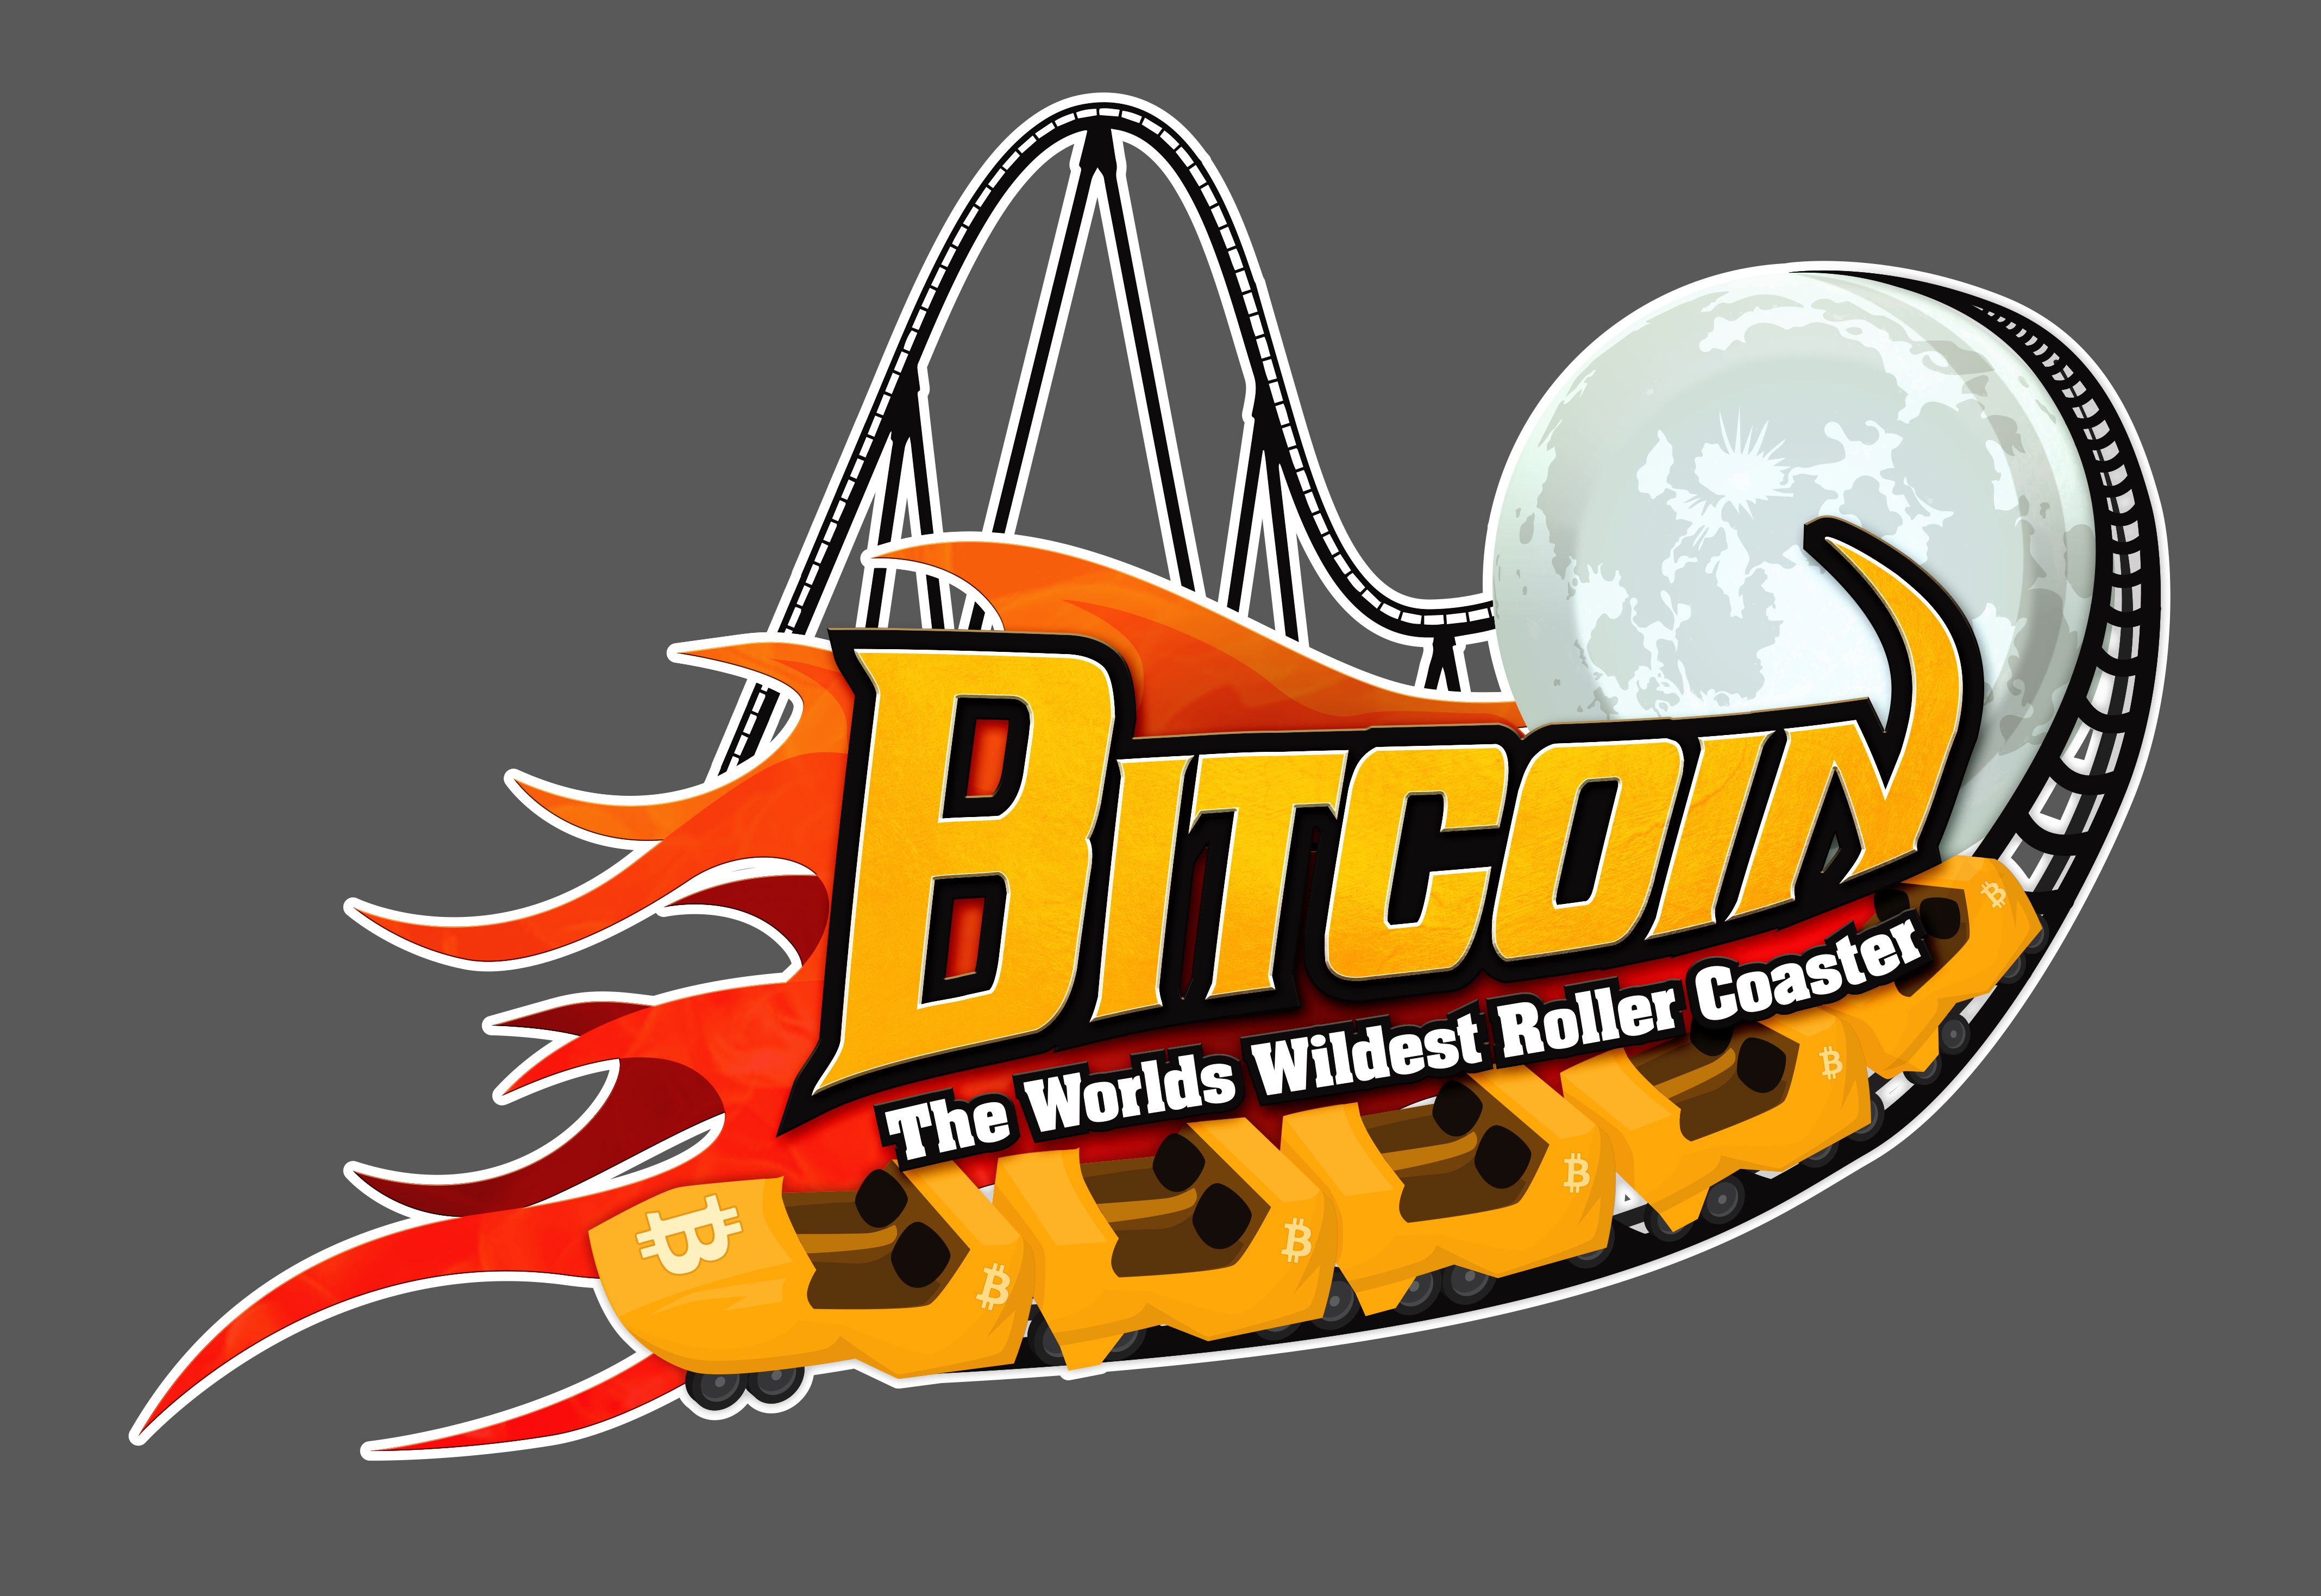 How the Volatility of Cryptocurrencies Could Serve as a Profitable Roller Coaster